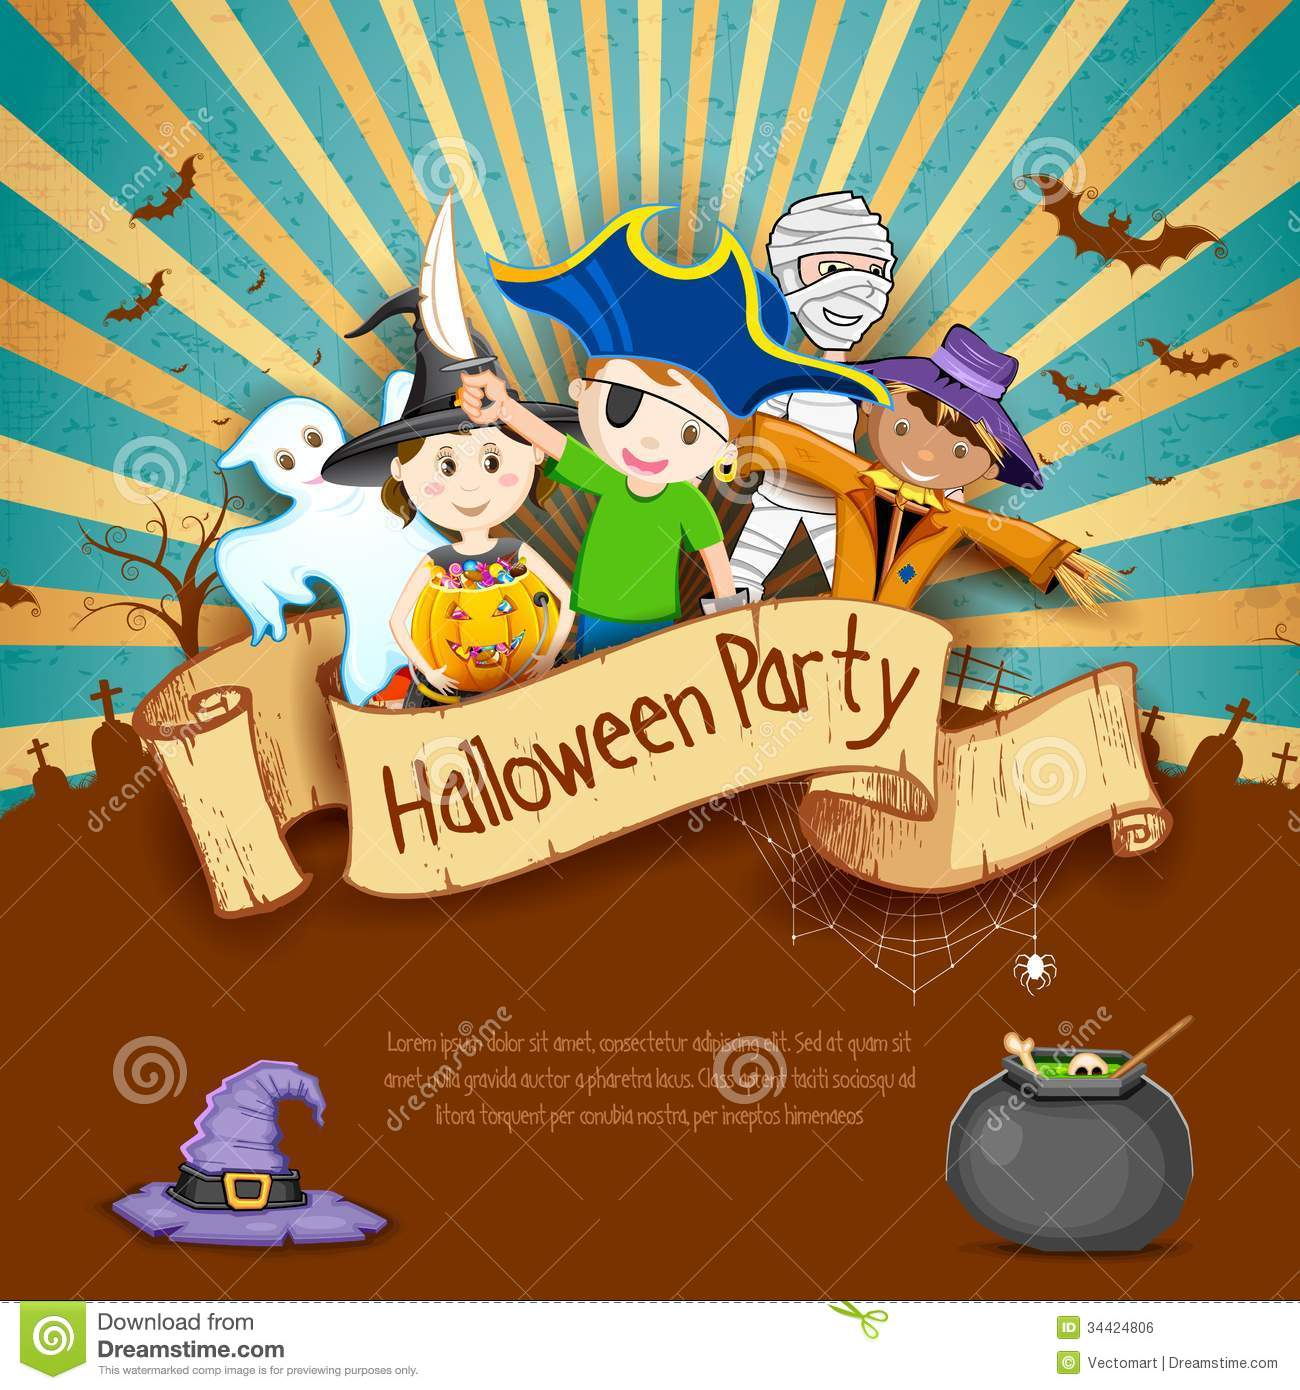 Kids In Halloween Party Royalty Free Stock Image - Image: 34424806